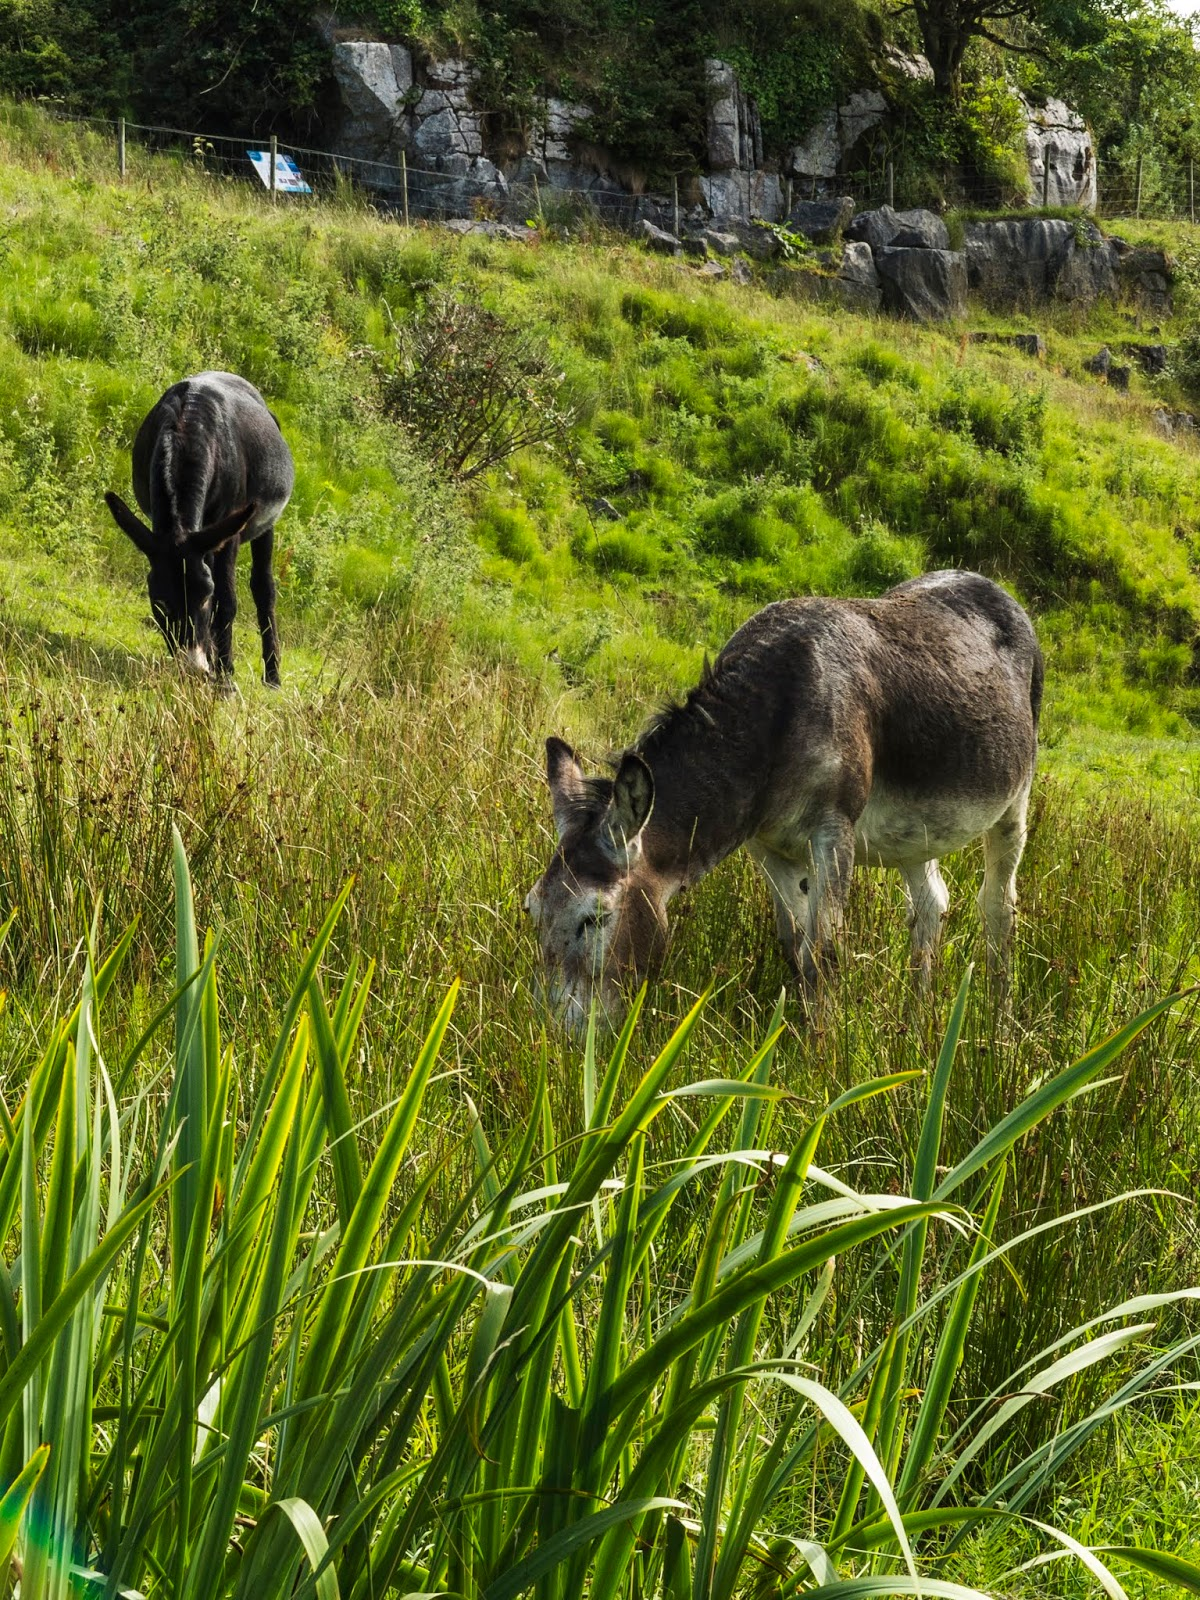 Donkeys grazing on a hillside in Doolin, County Clare on a sunny day.